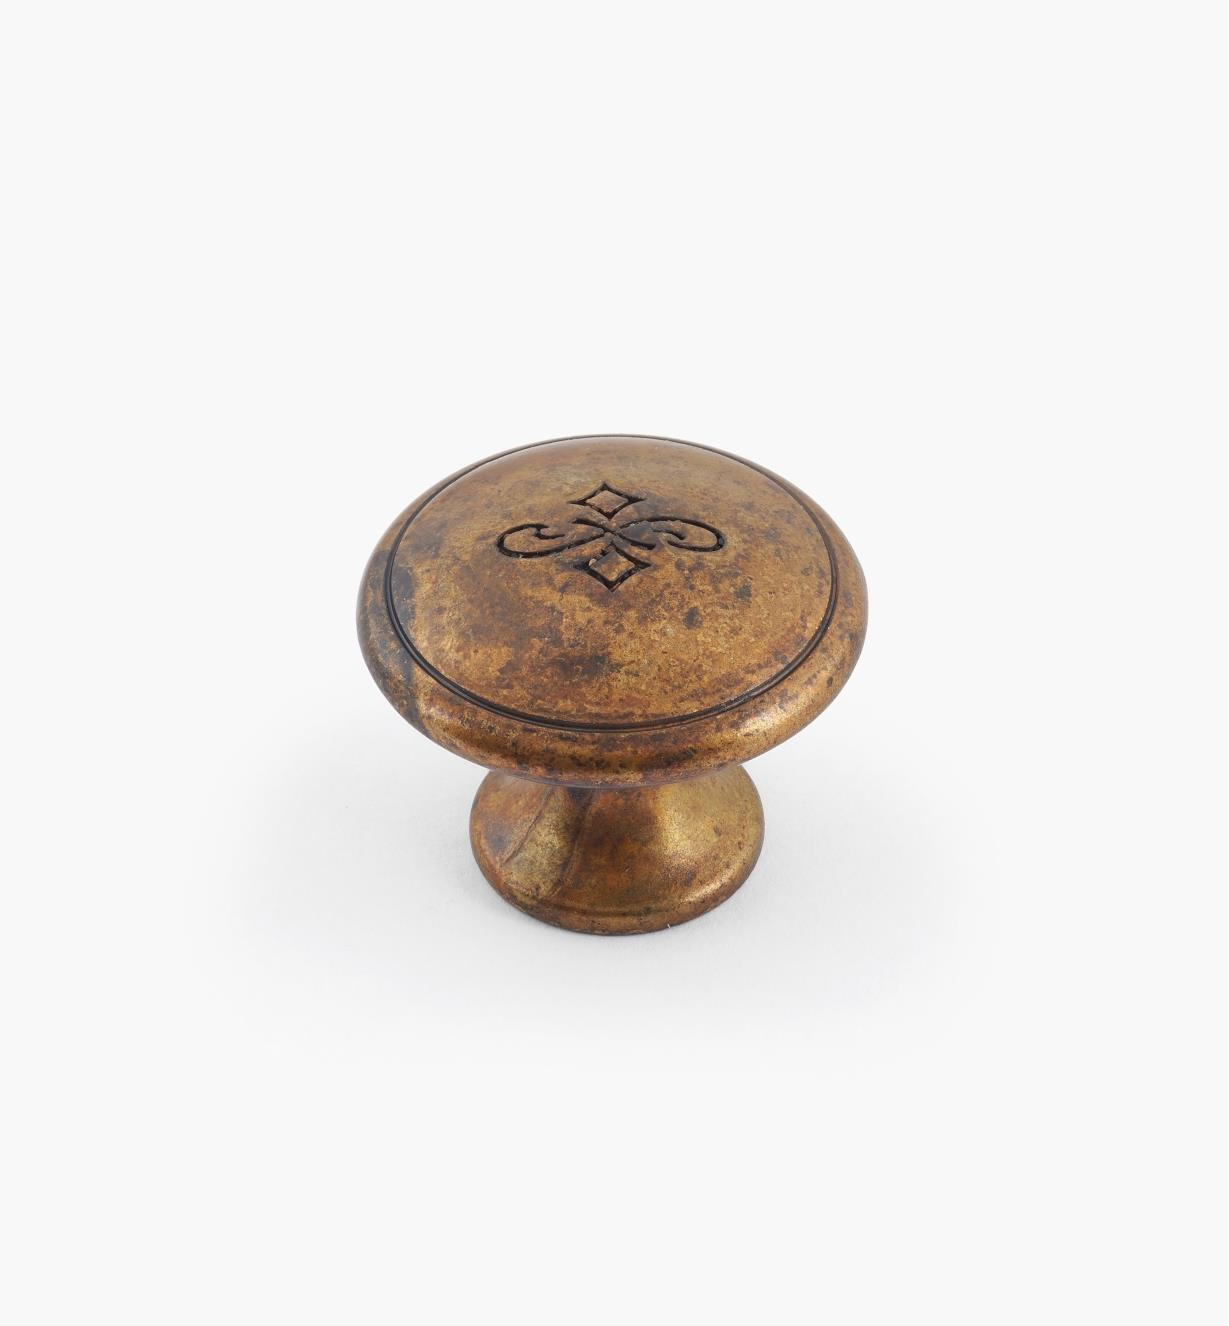 01X4110 - 25mm x 20mm Old Brass Knob